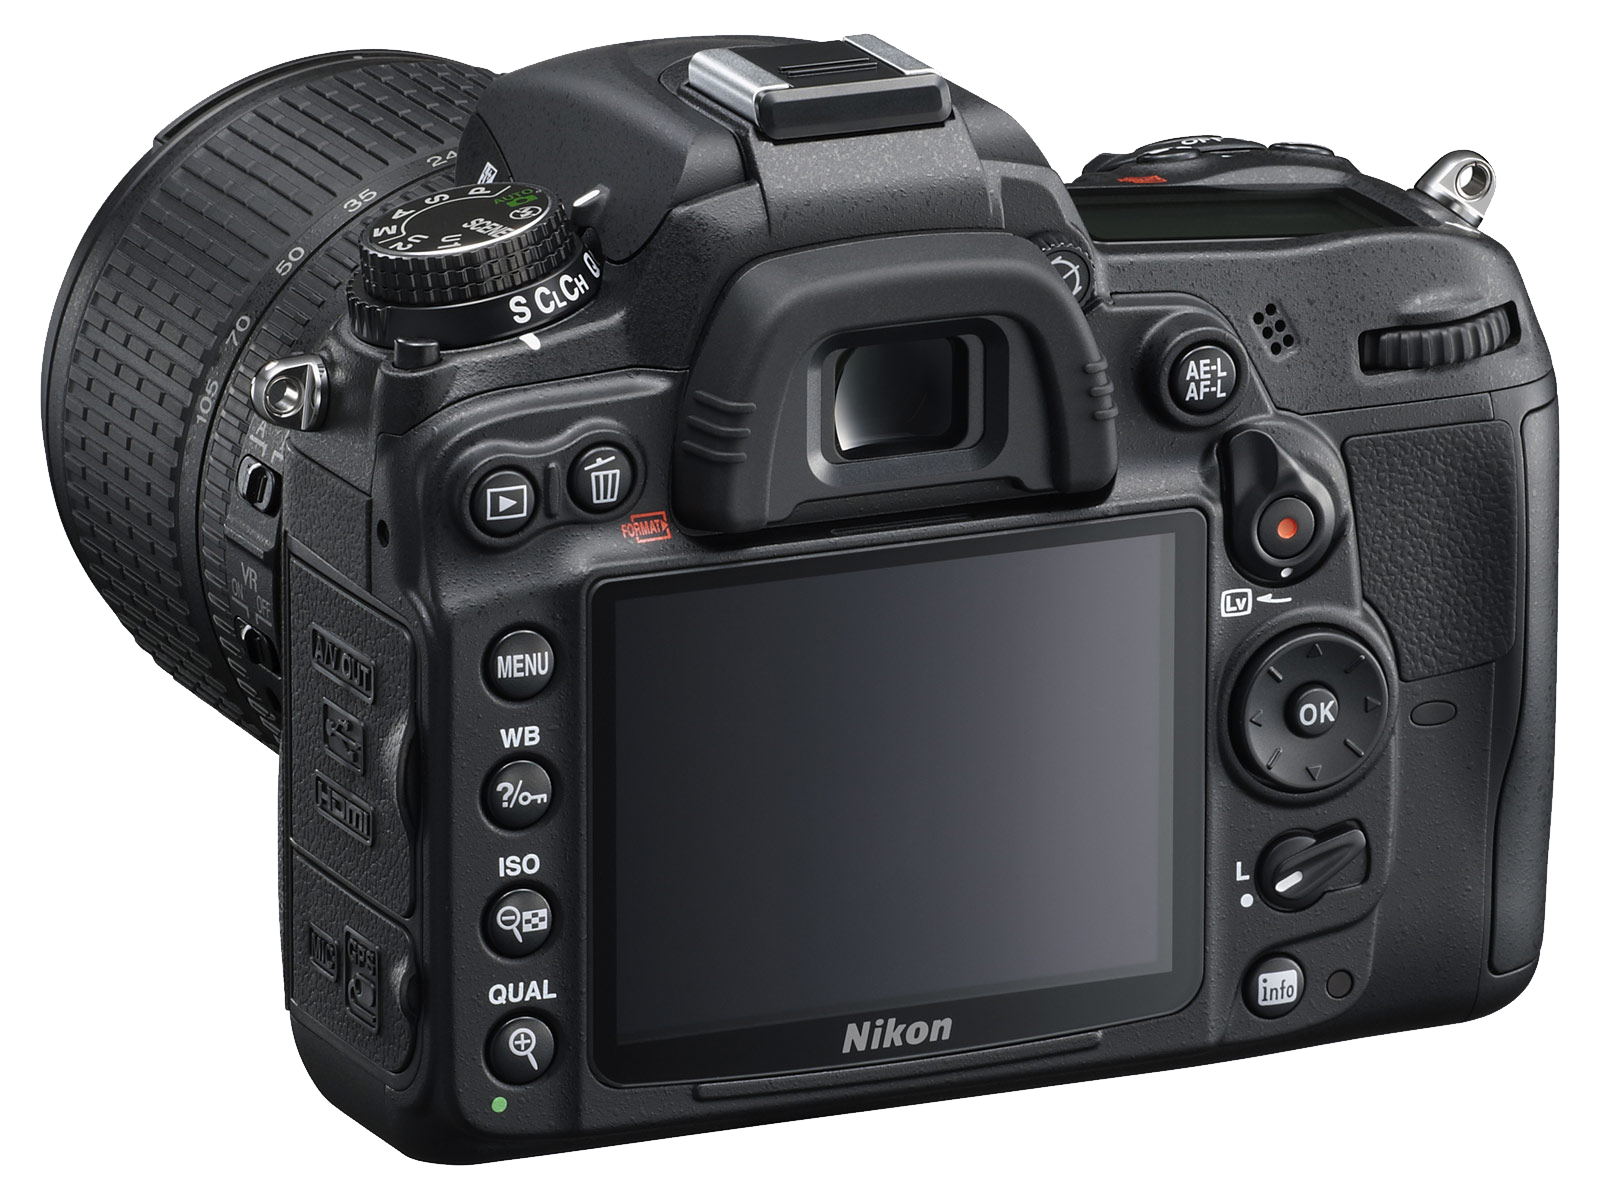 Photo Camera Amazing Image Download 20750